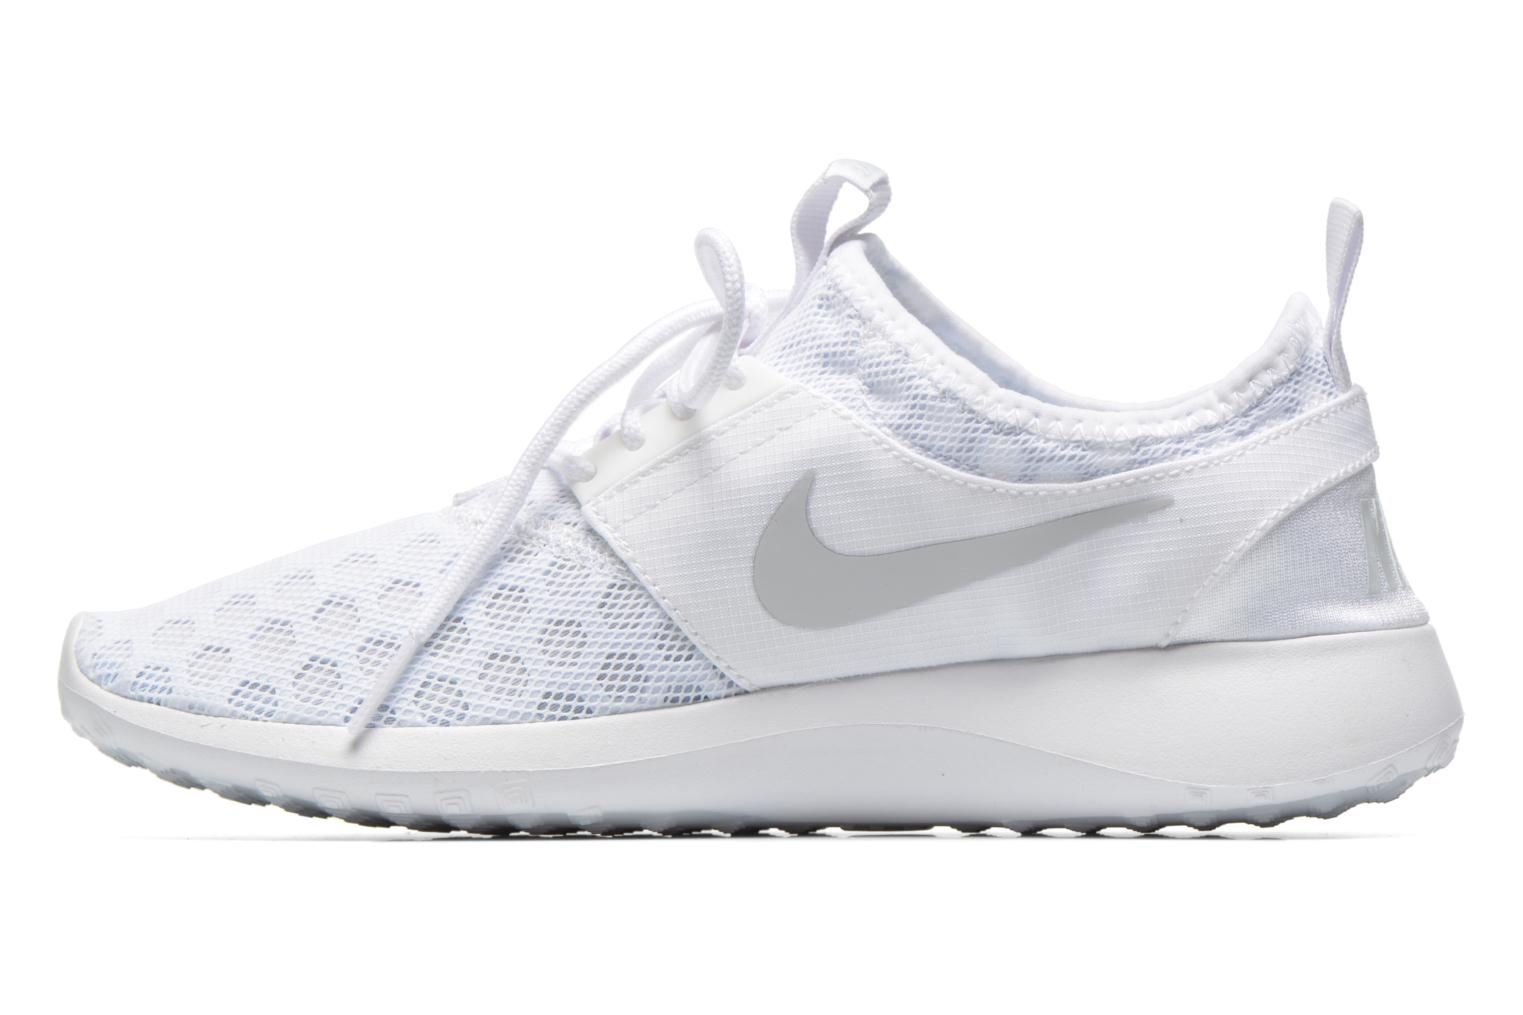 Nike Juvenate White/Pure Platinum-White